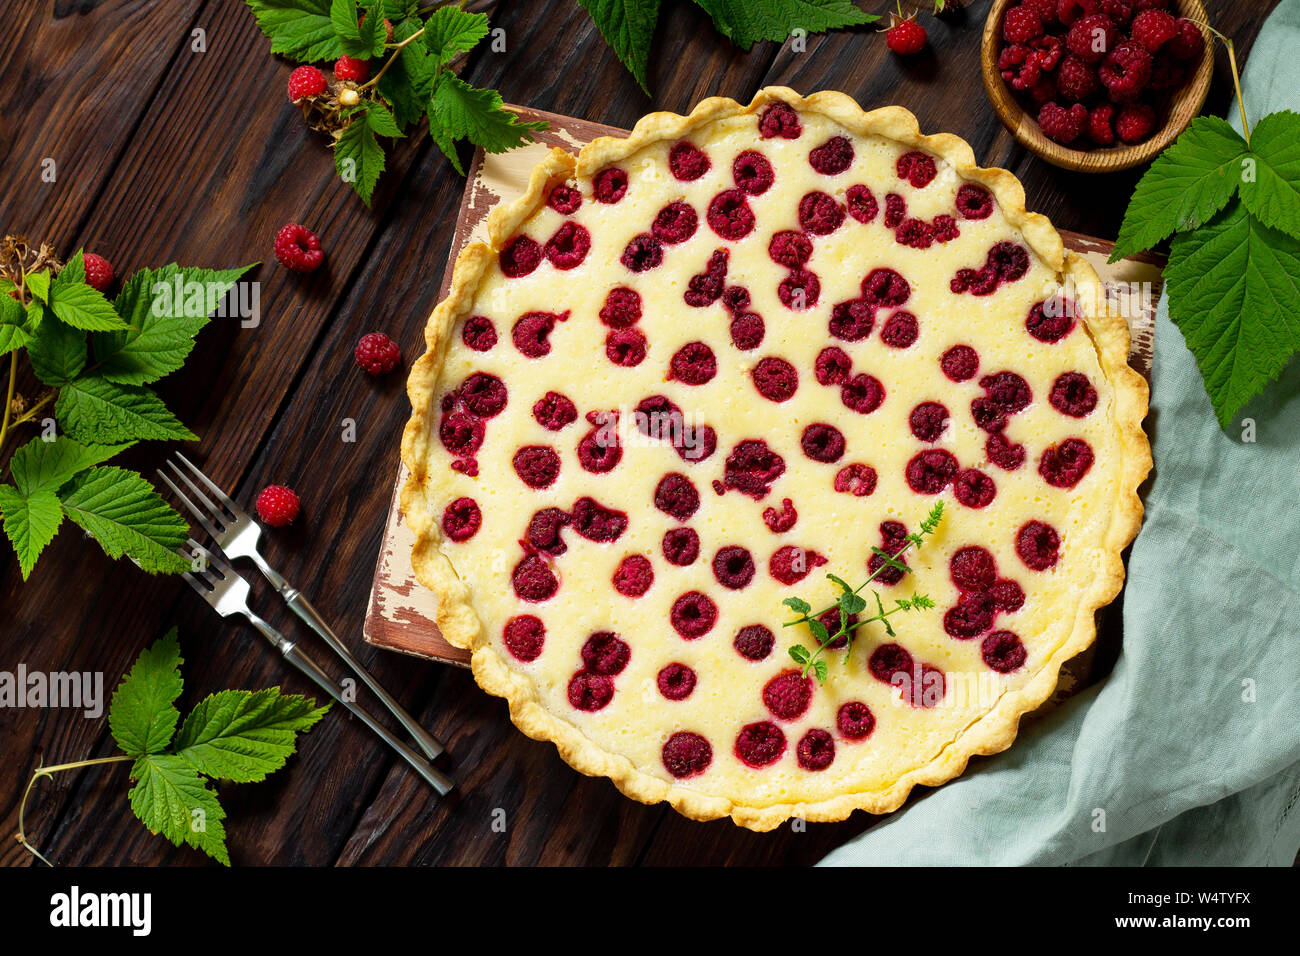 Berry pie summer. Sweet pie, tart with fresh berry raspberries. Delicious cake with raspberries. Top view flat lay. Stock Photo